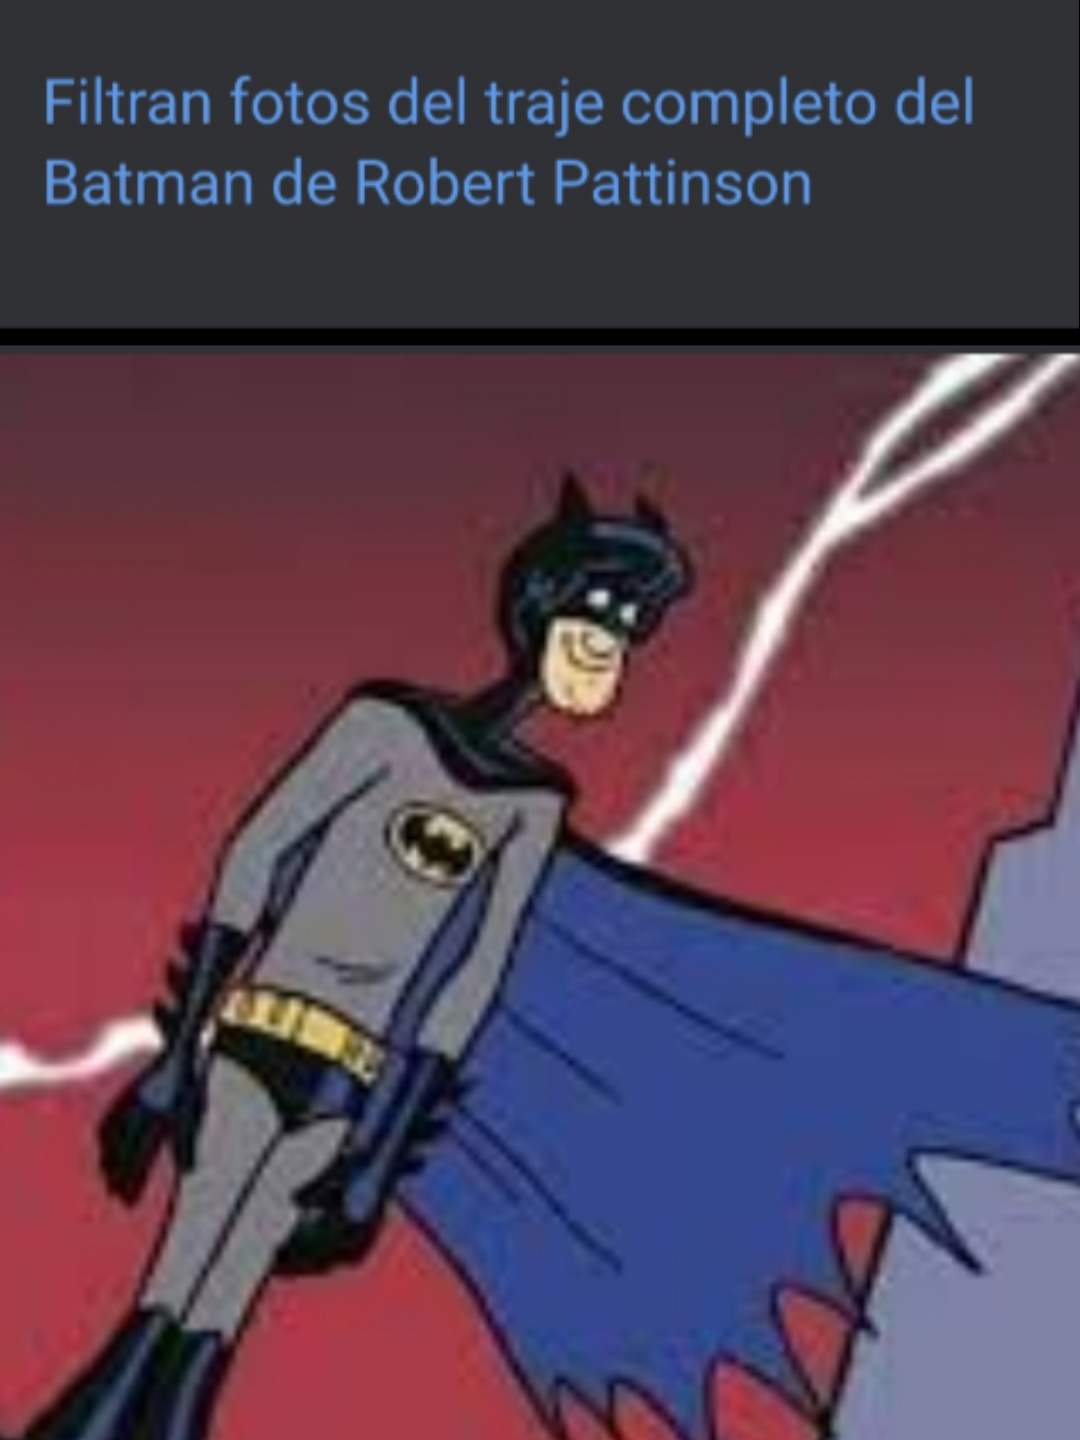 The batman - meme